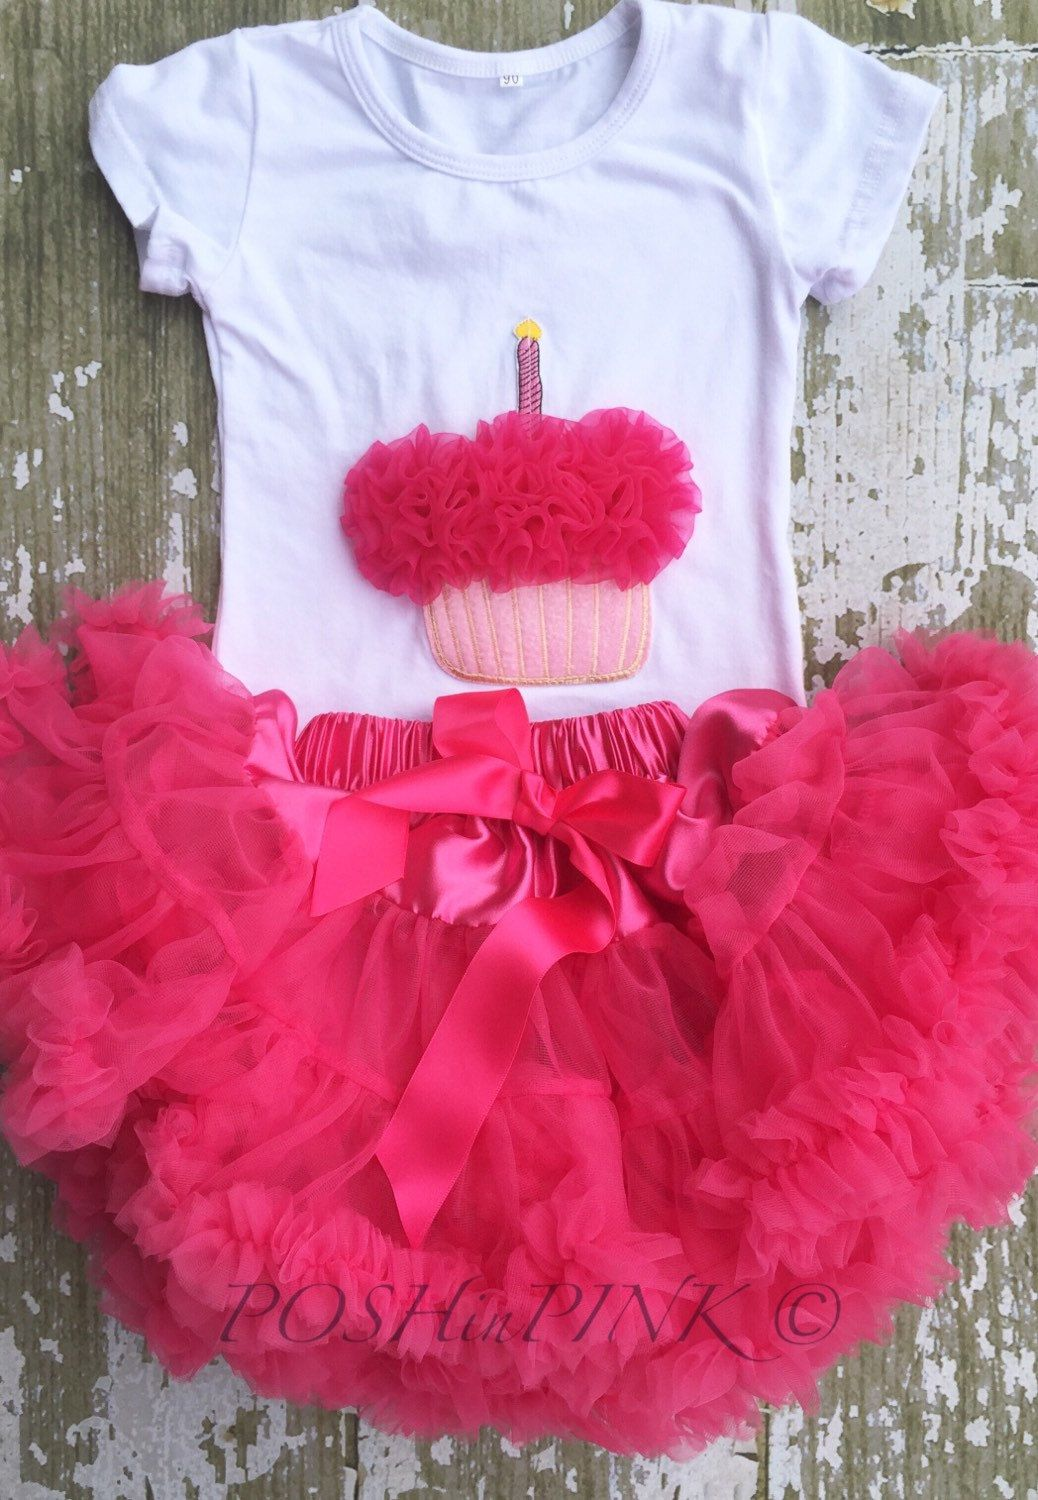 Hot pink birthday cupcake outfit! Cup cake chiffon pettiskirt, kids, petti skirt, toddler baby, girls skirt, toddler, baby, fluffy, outfit, by POSHinPINKKIDS on Etsy